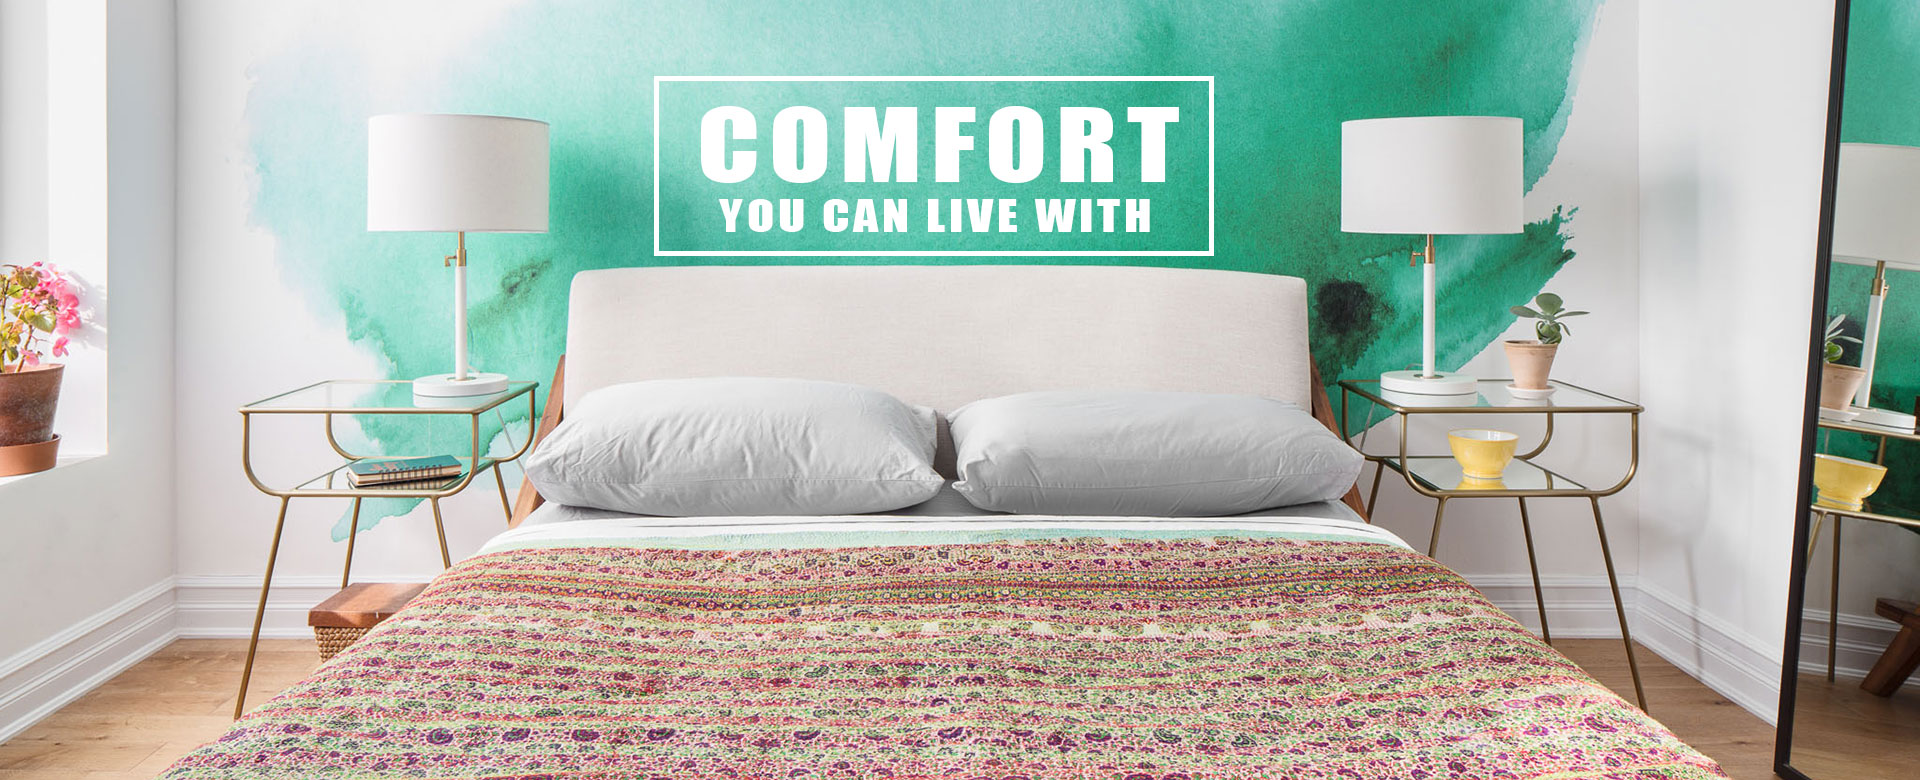 Comfort You Can Live With